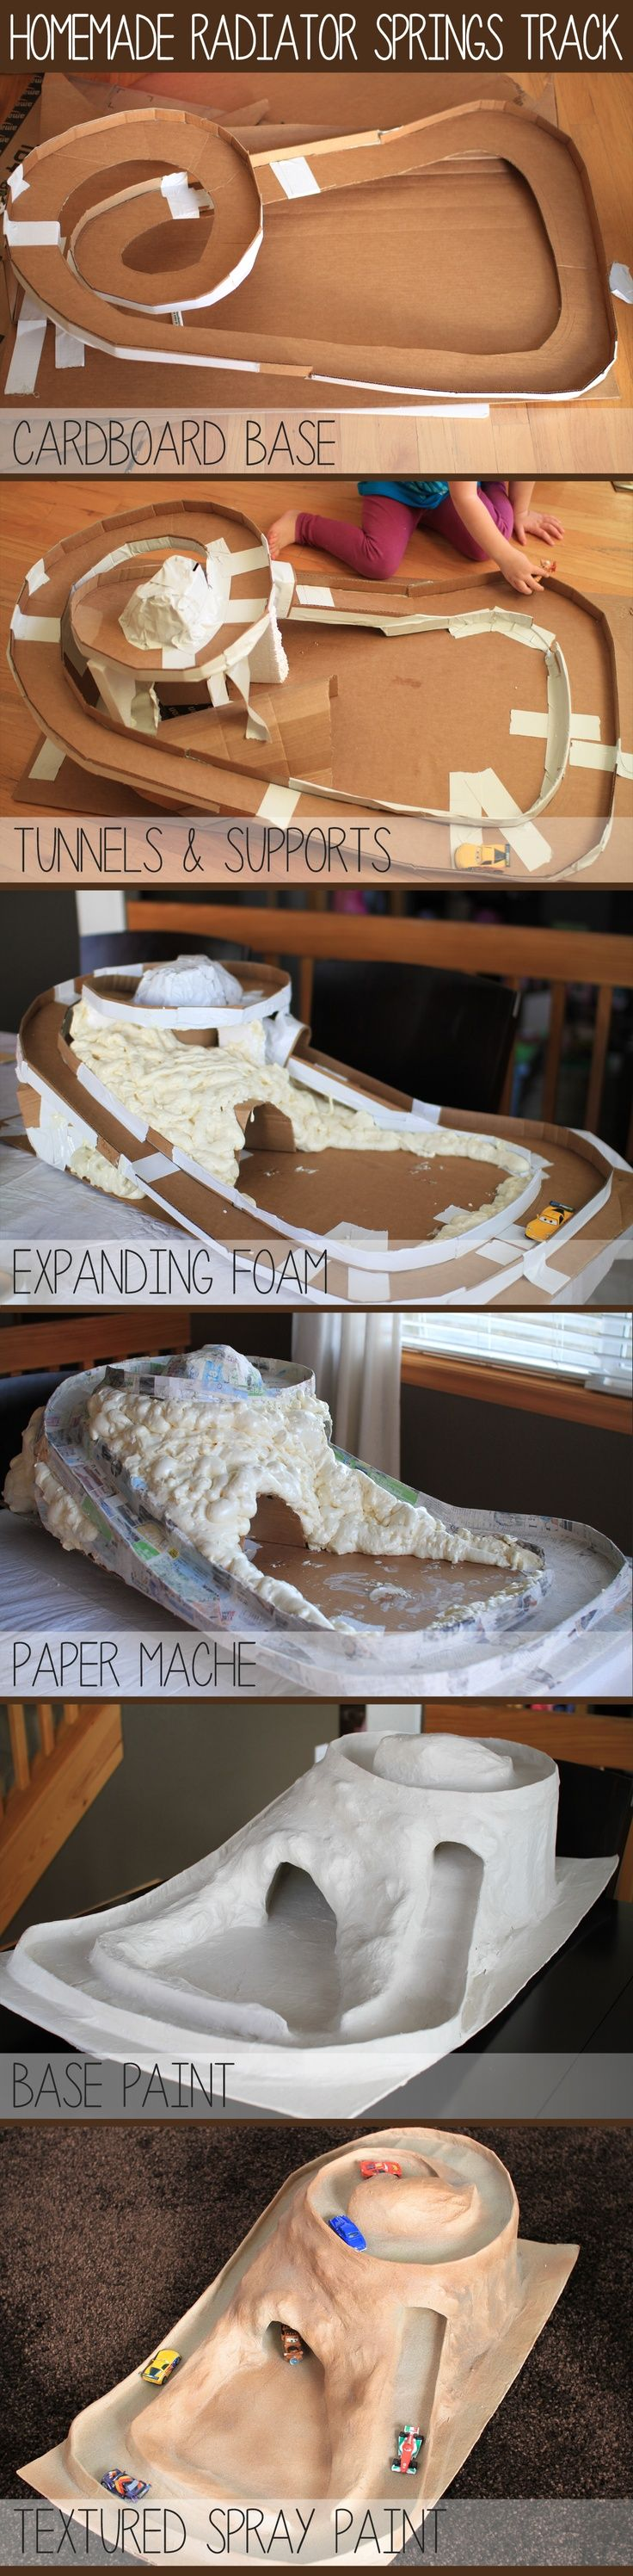 Homemade Cars track for my son - he wanted a spiral track around a mountain with a tunnel at the top. A little cardboard, expanding foam, paper mache, paint, and... Voila!